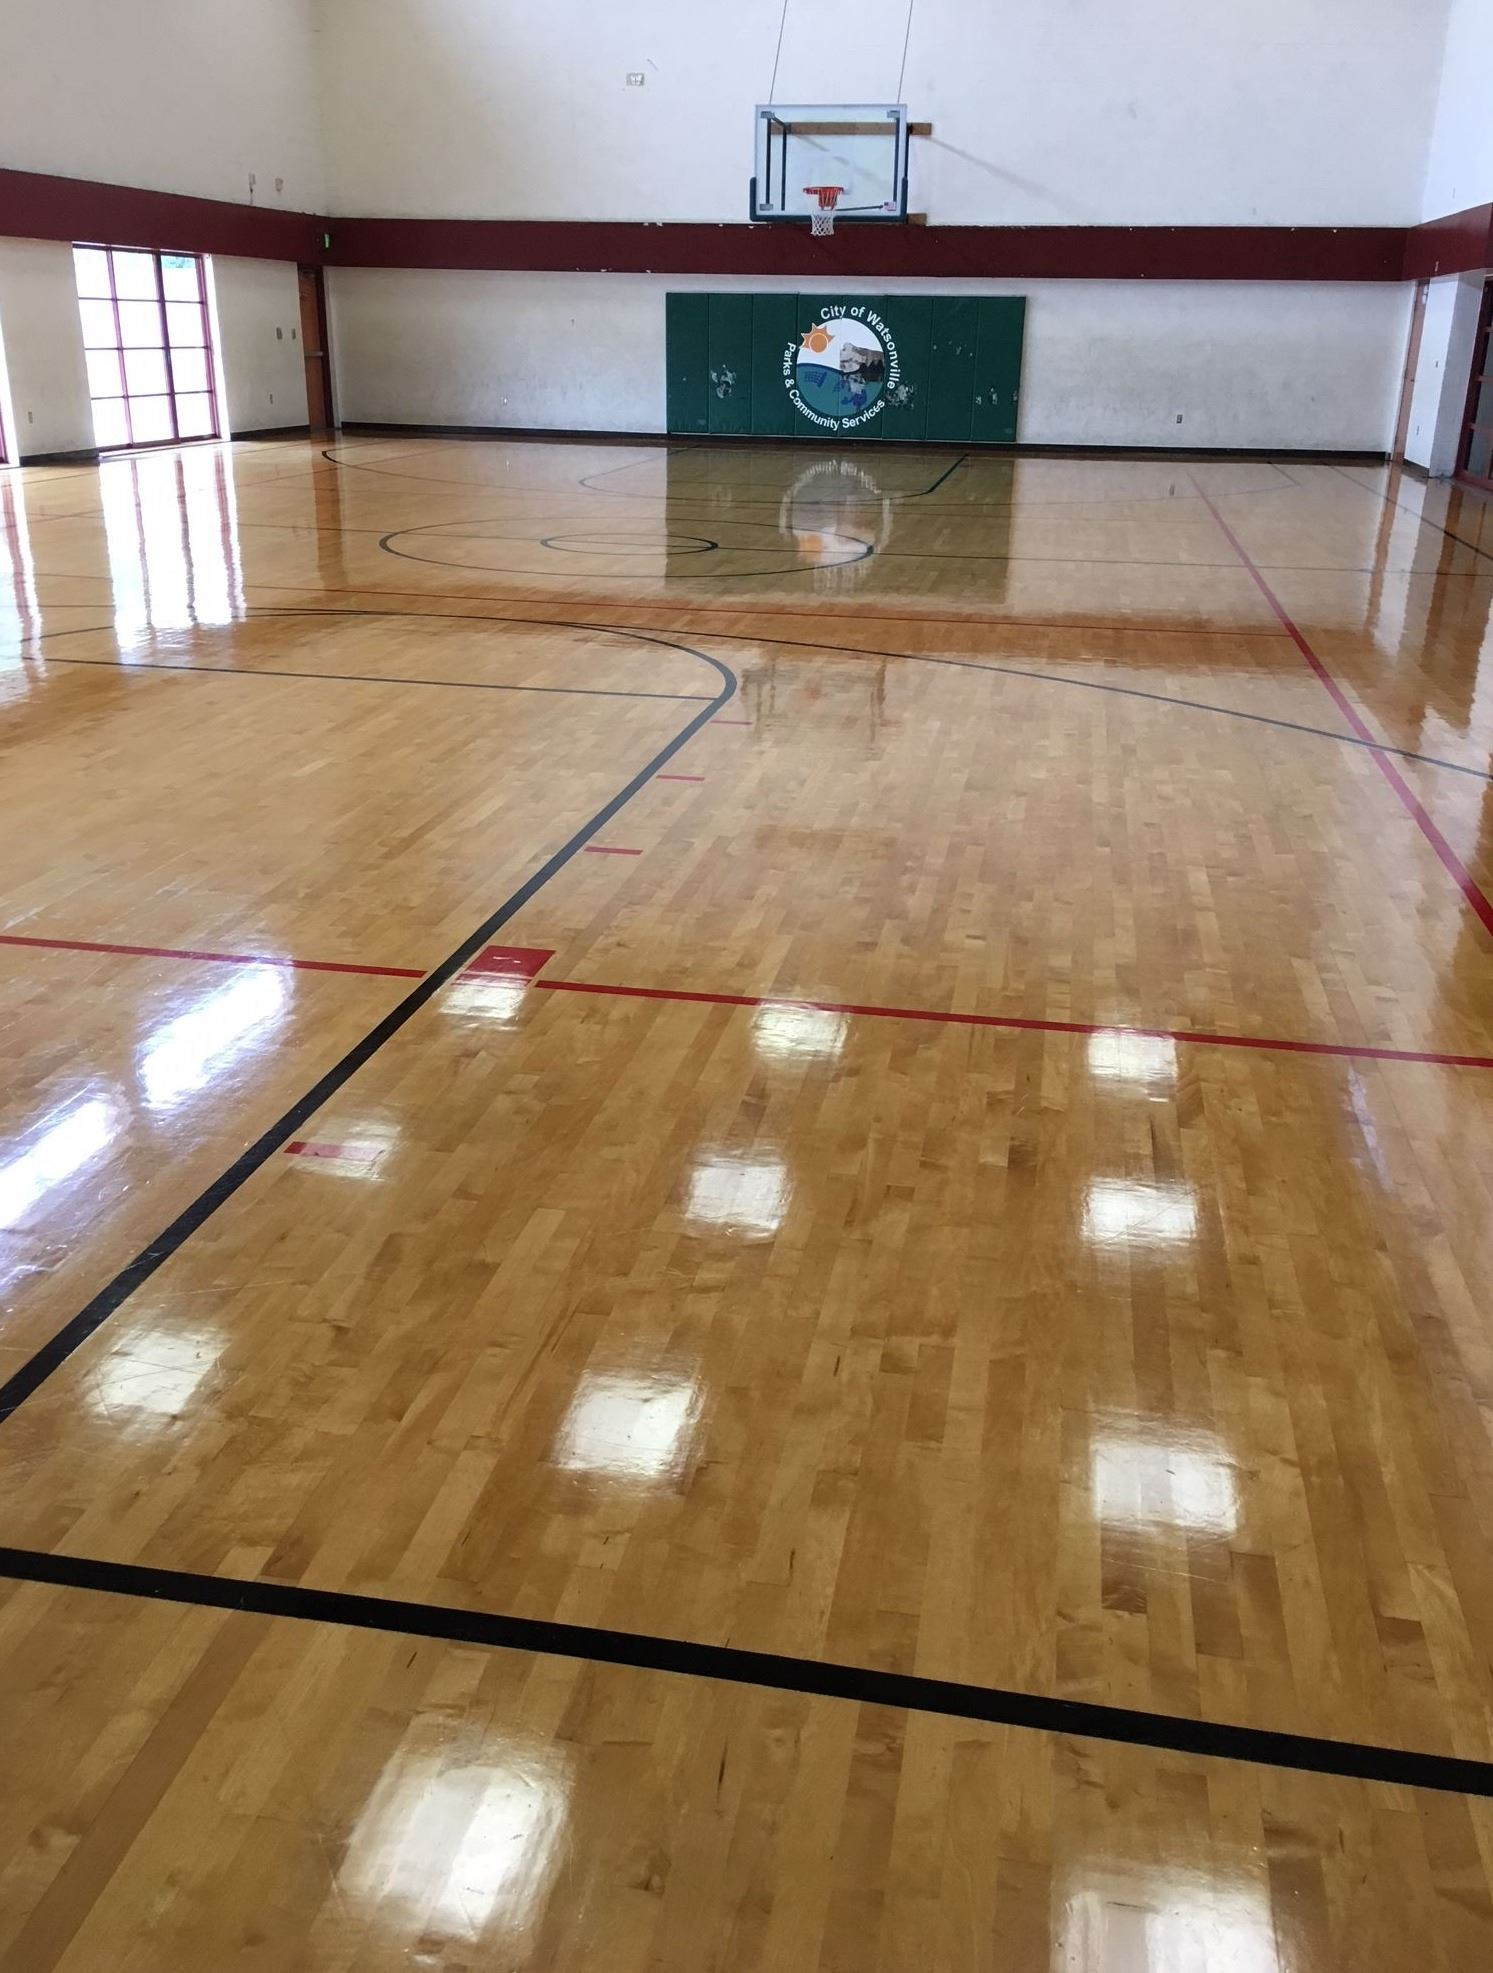 YC Gym Floor